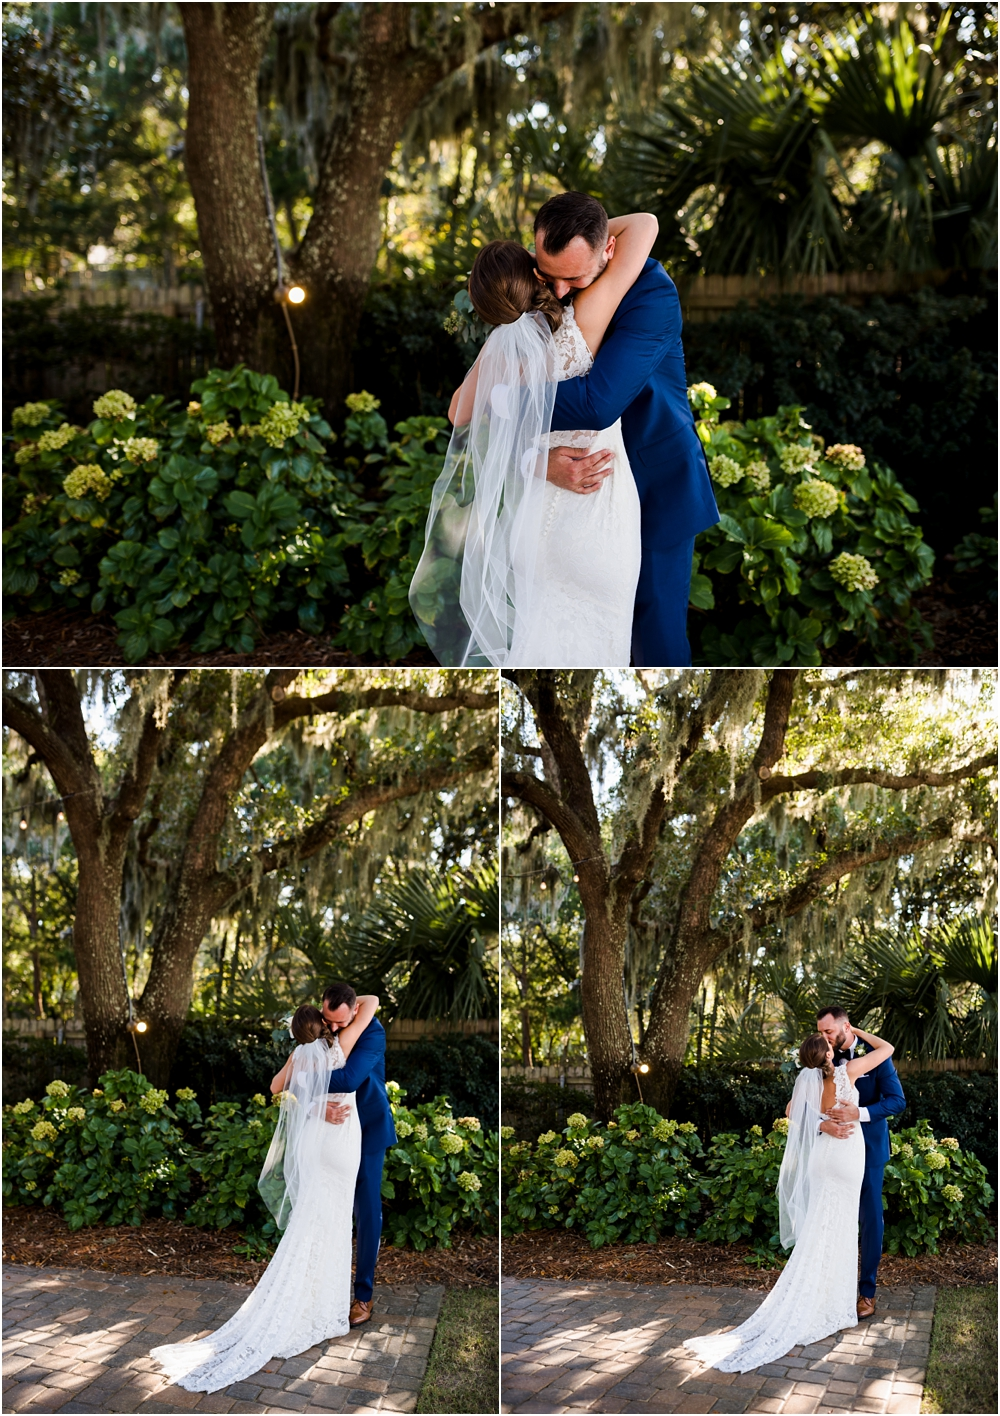 varner-florida-wedding-photographer-30a-panama-city-beach-destin-tallahassee-kiersten-grant-photography-49.jpg